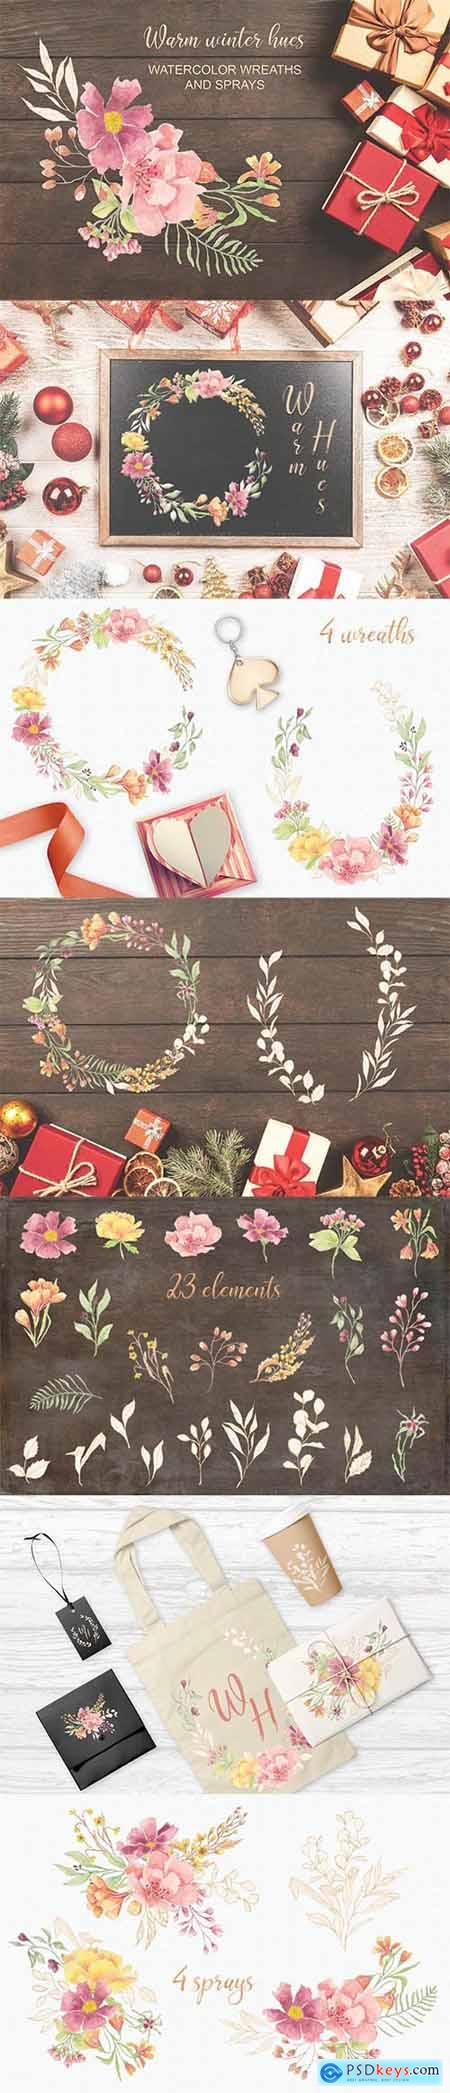 Warm Winter Hues- Watercolor Wreaths and Sprays